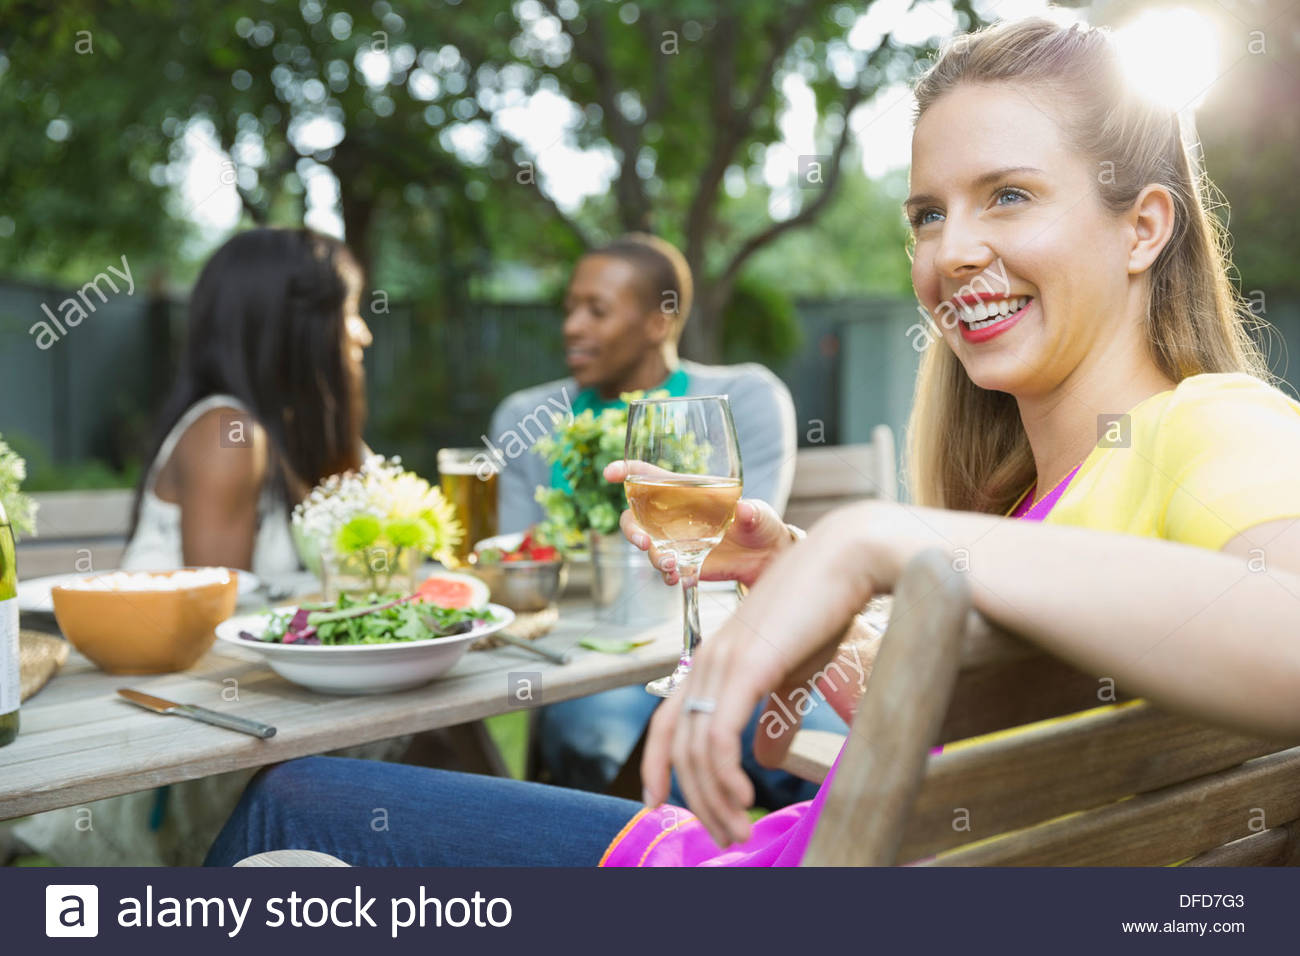 Smiling woman having meal with friends outdoors - Stock Image